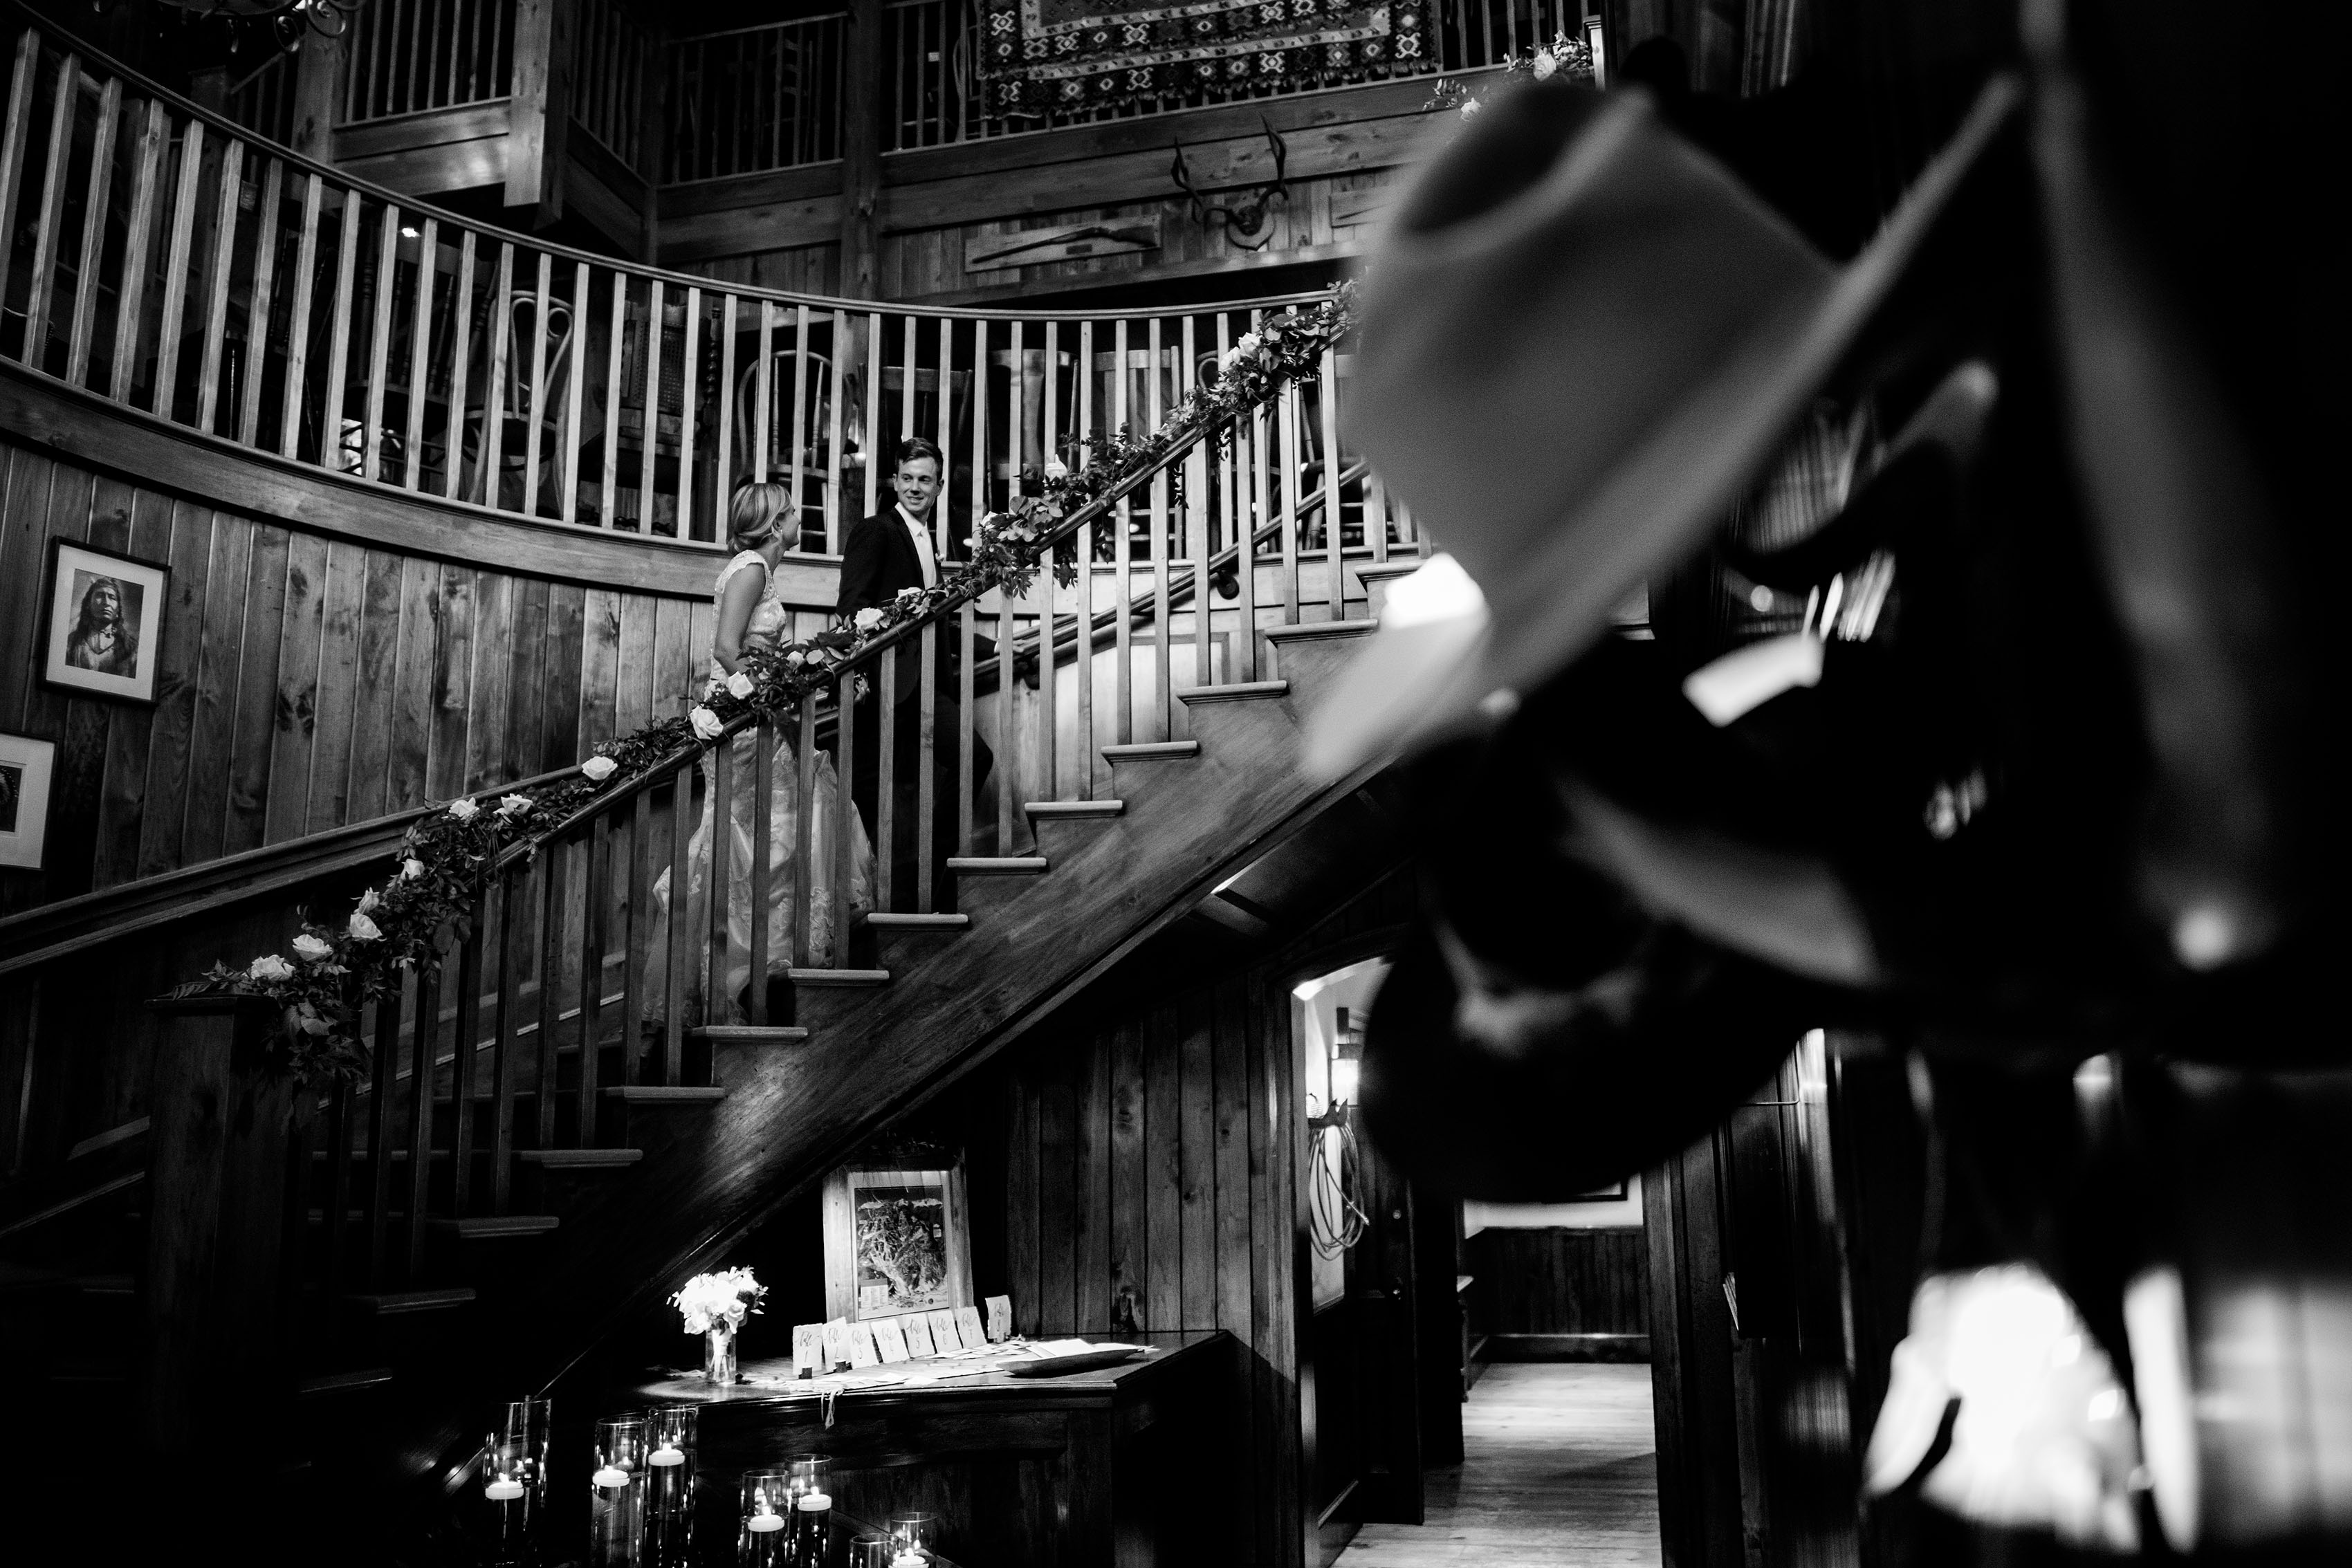 The newlyweds climb the spiral staircase at Saddleridge